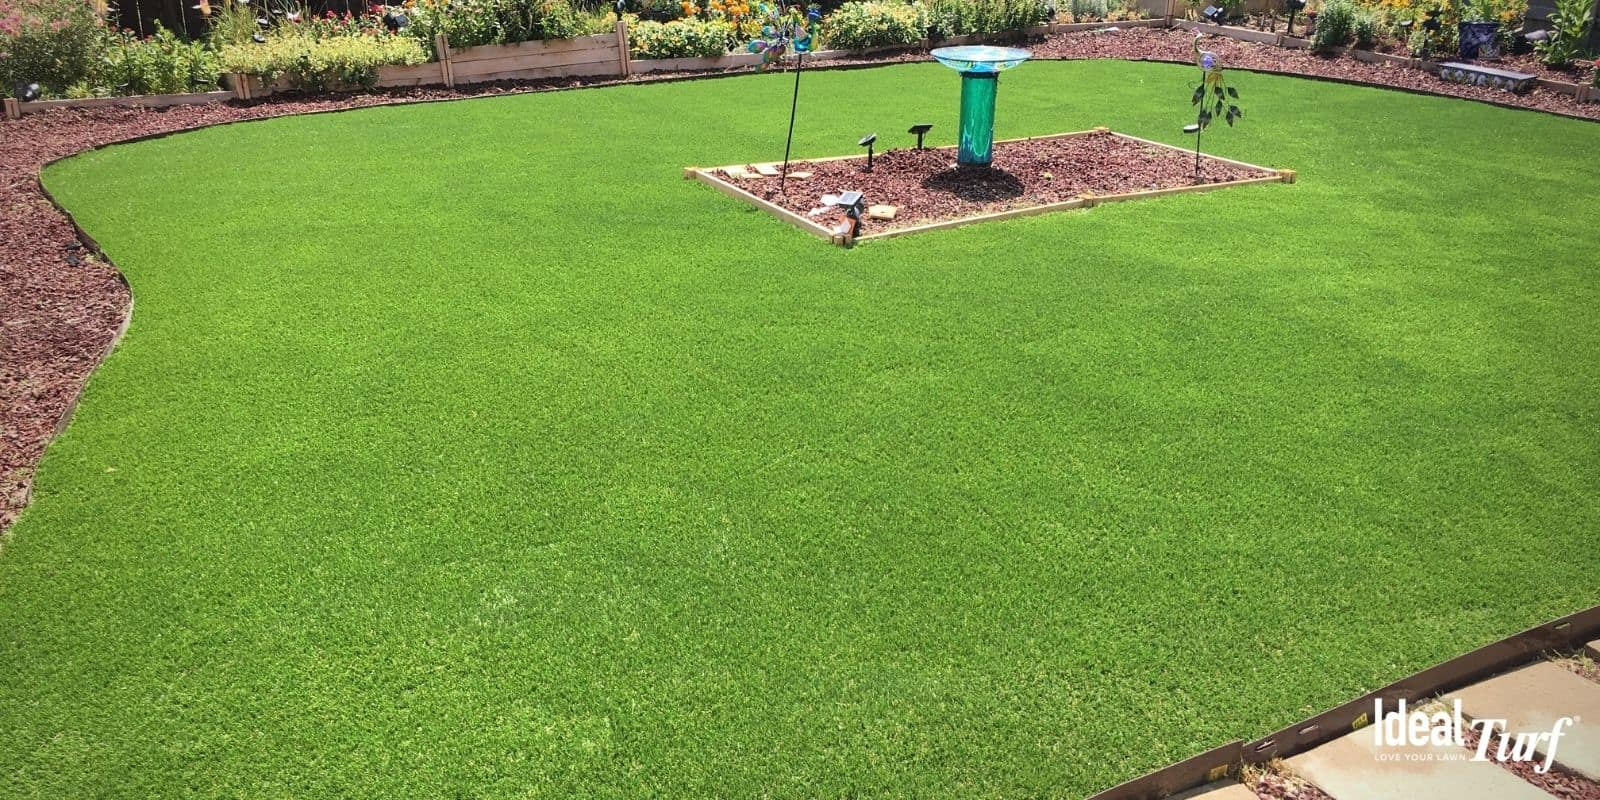 Bright artificial grass installation that doesn't fade over time